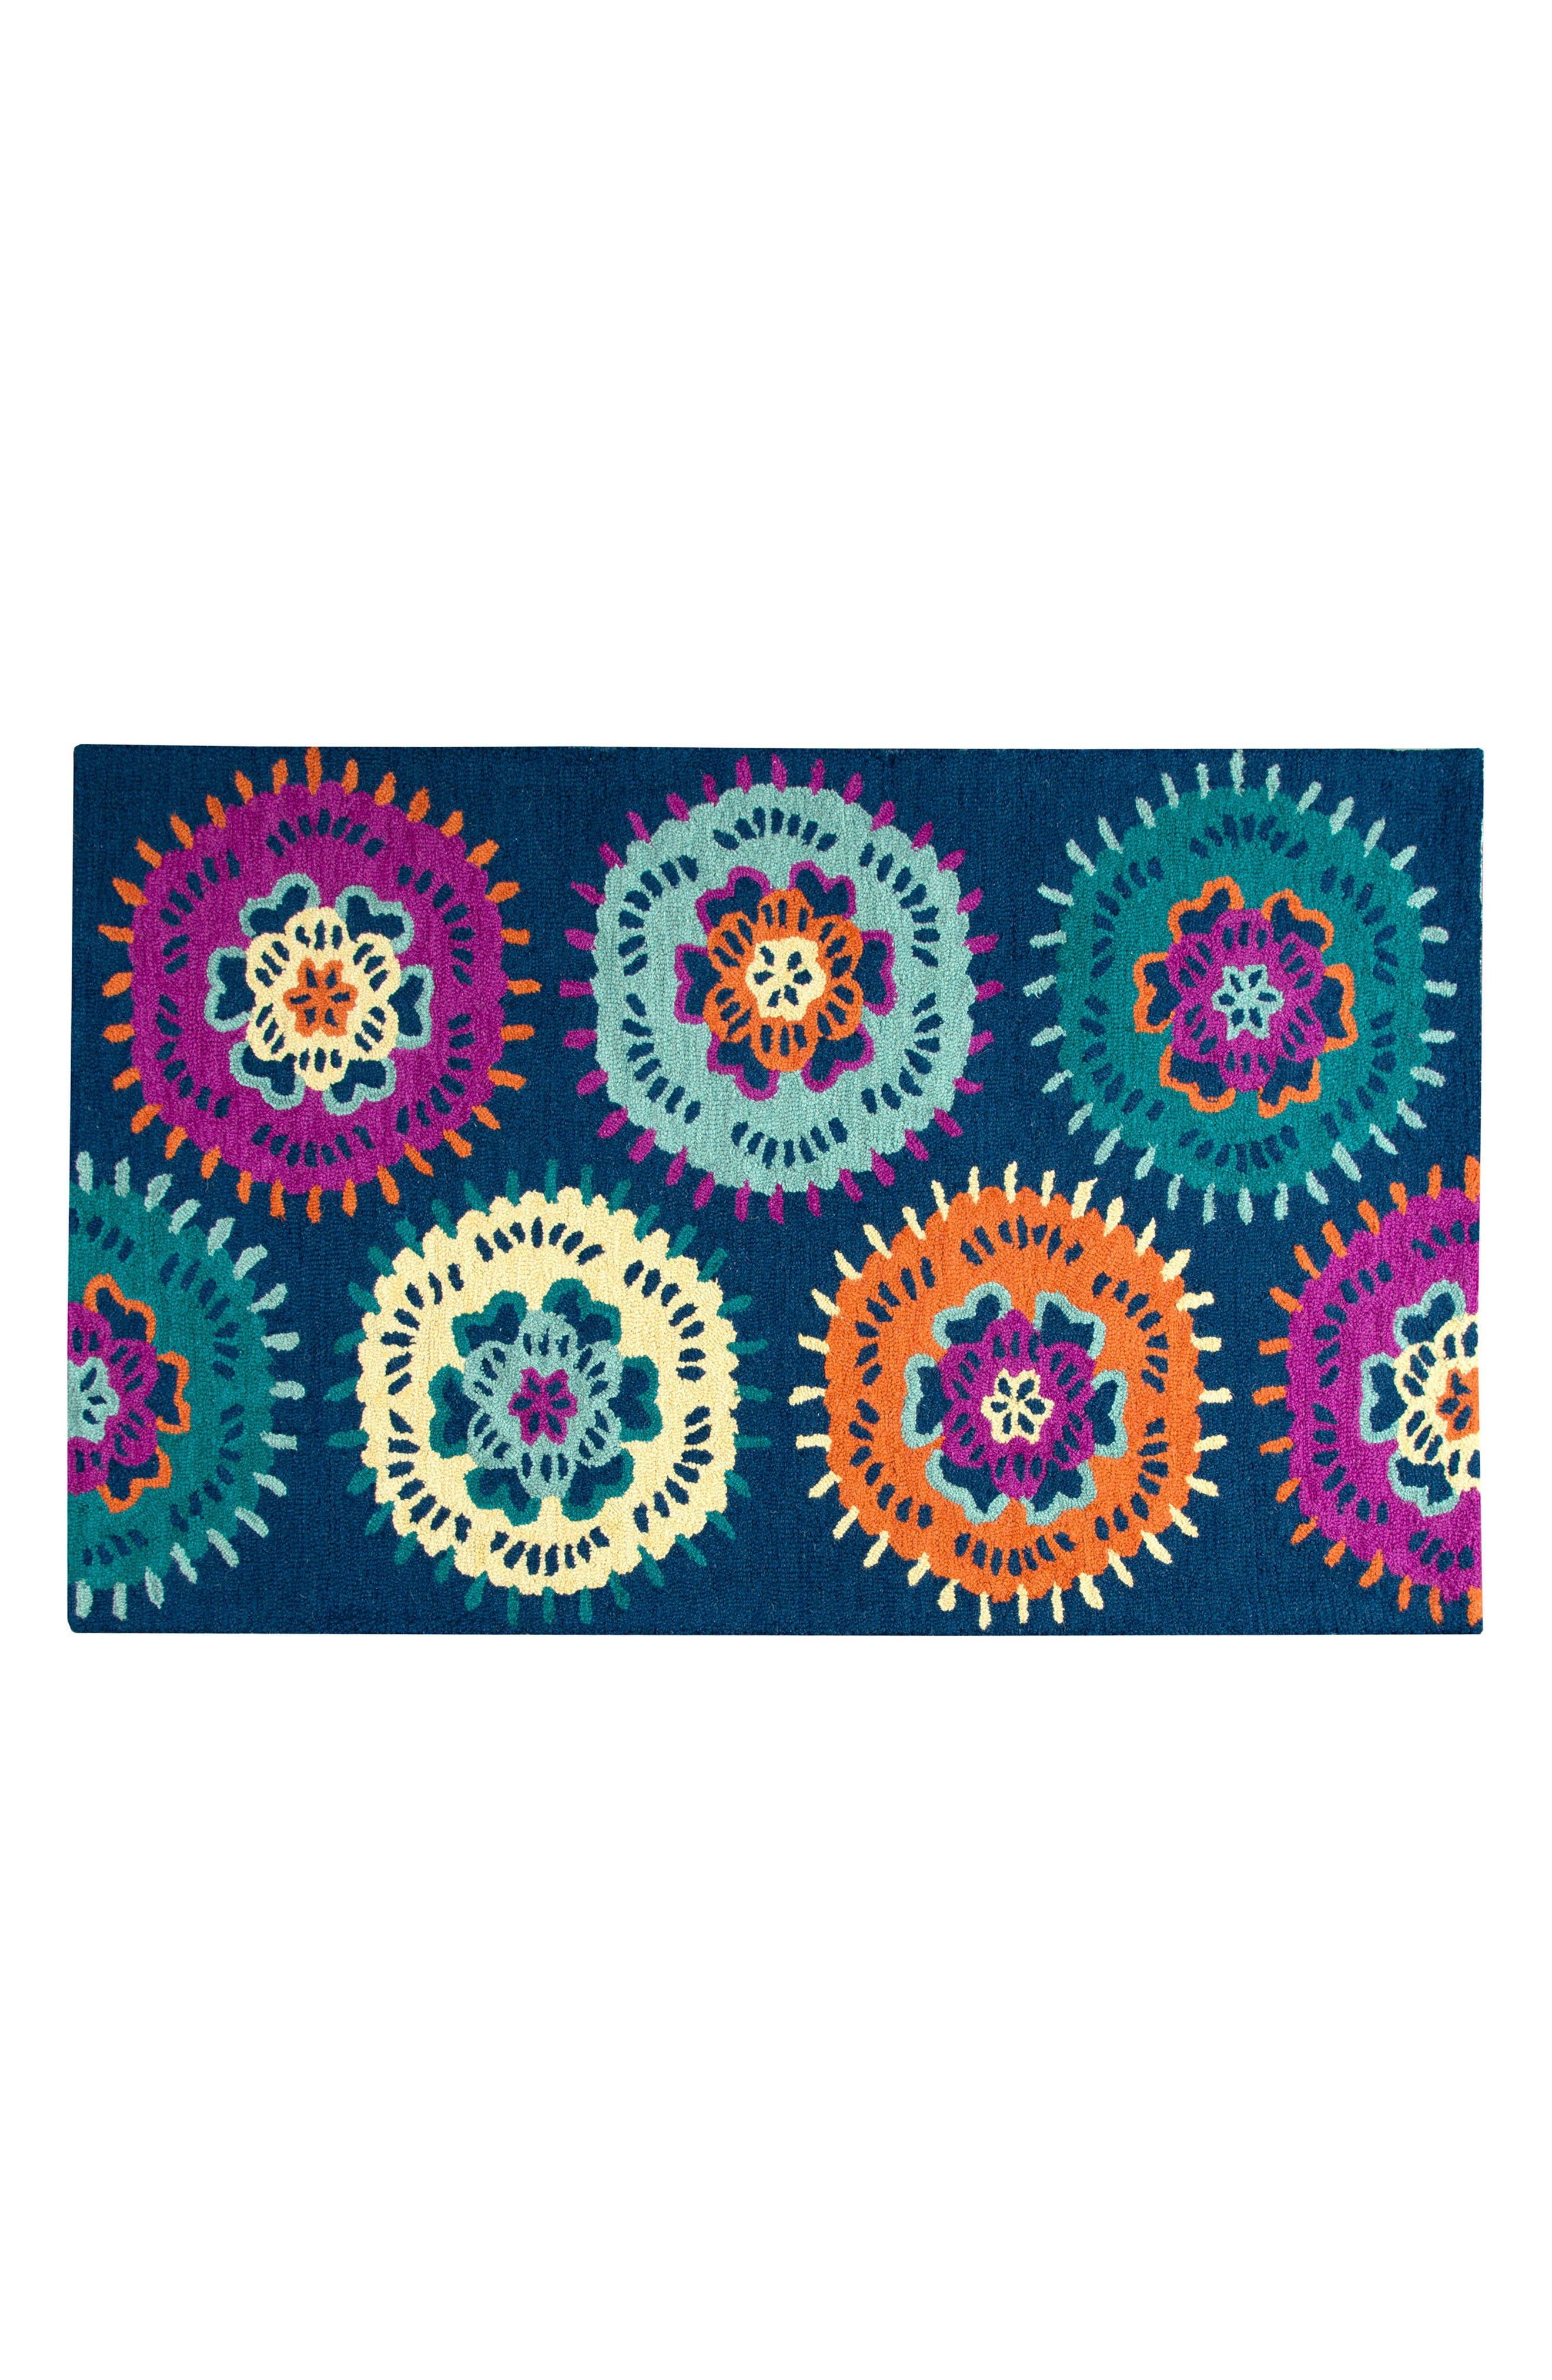 Play Day Flowery Rug,                             Main thumbnail 1, color,